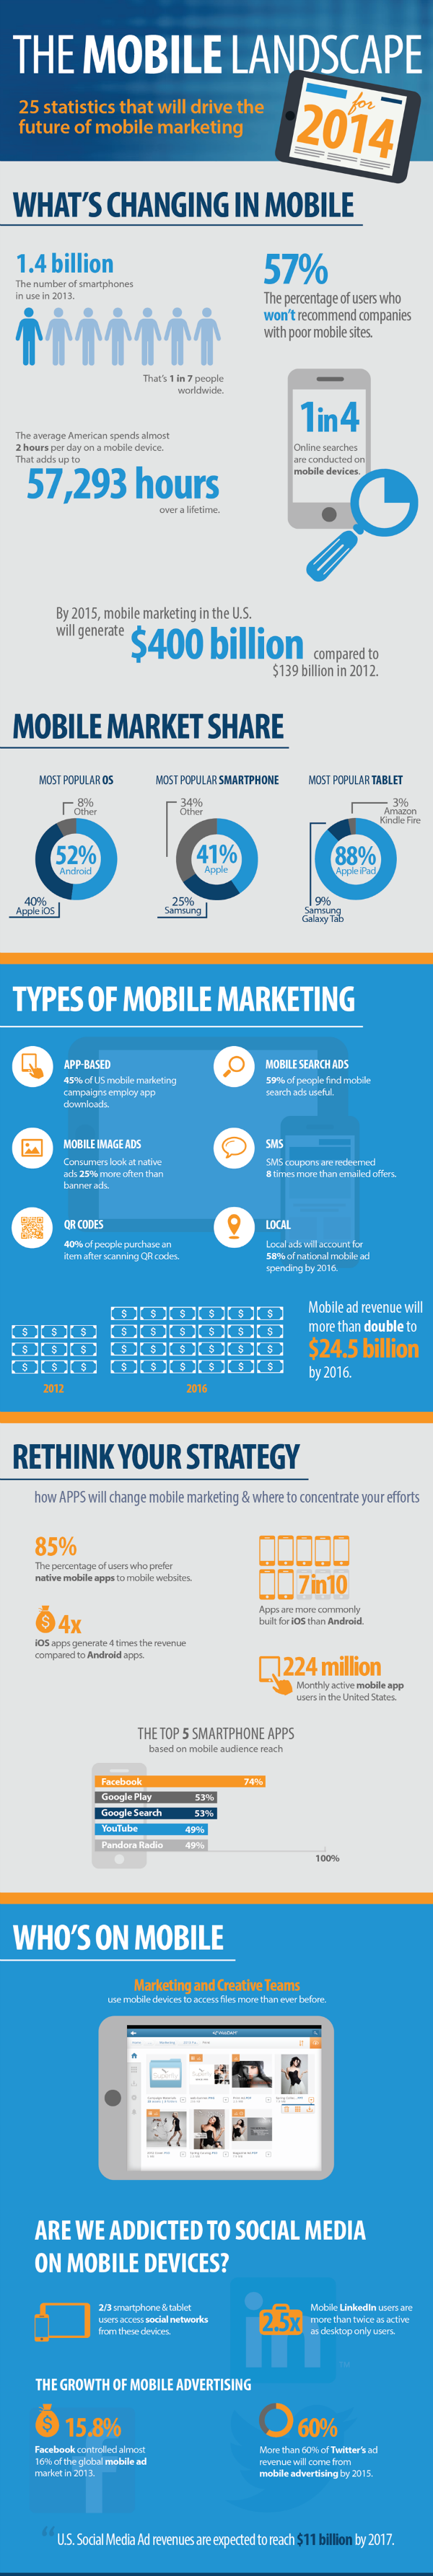 Mobile Marketing Poised to Make an Impact in 2014 [INFOGRAPHIC]